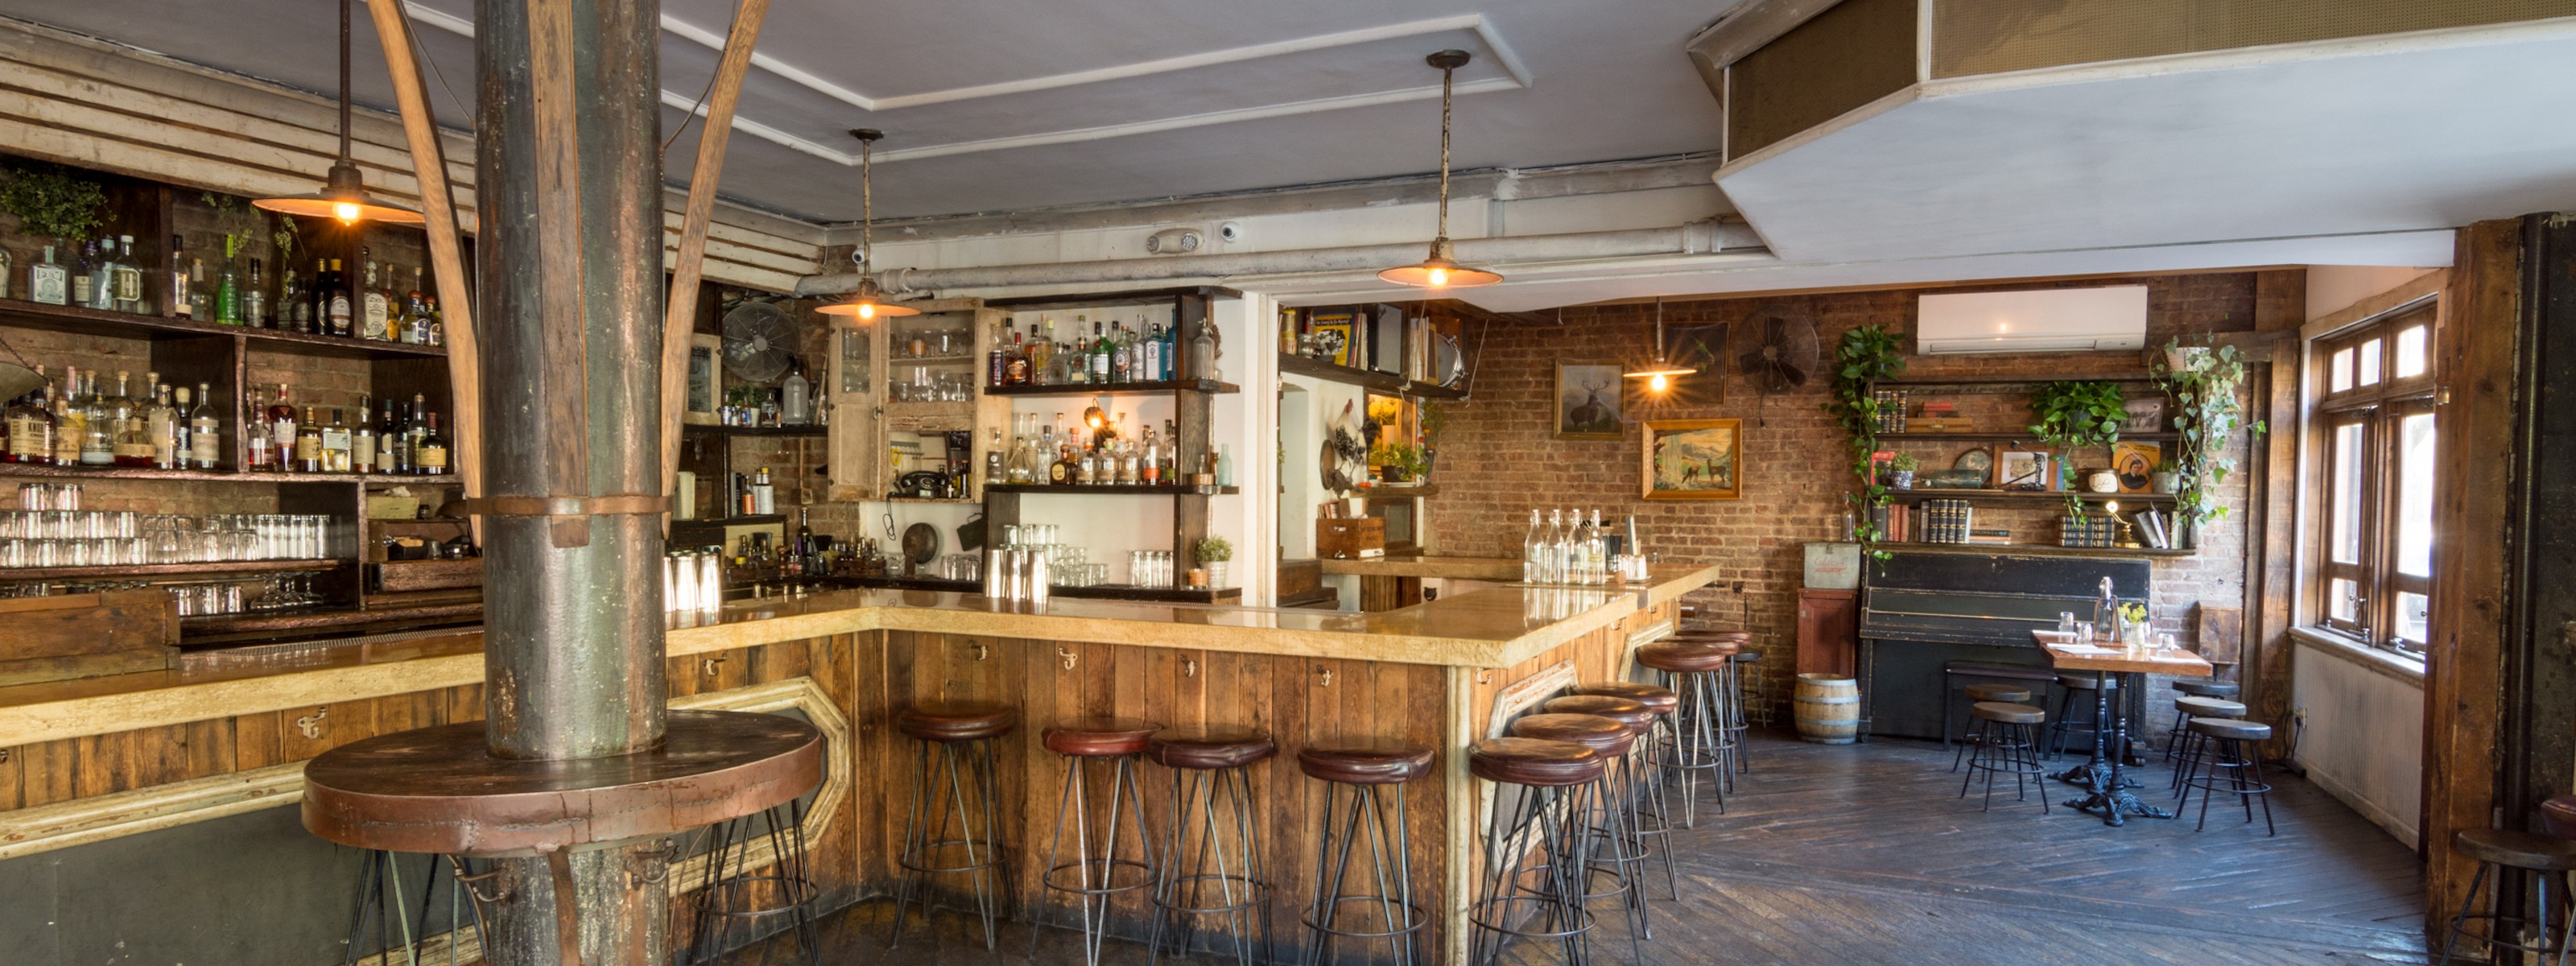 Where To Day Drink In Winter New York The Infatuation